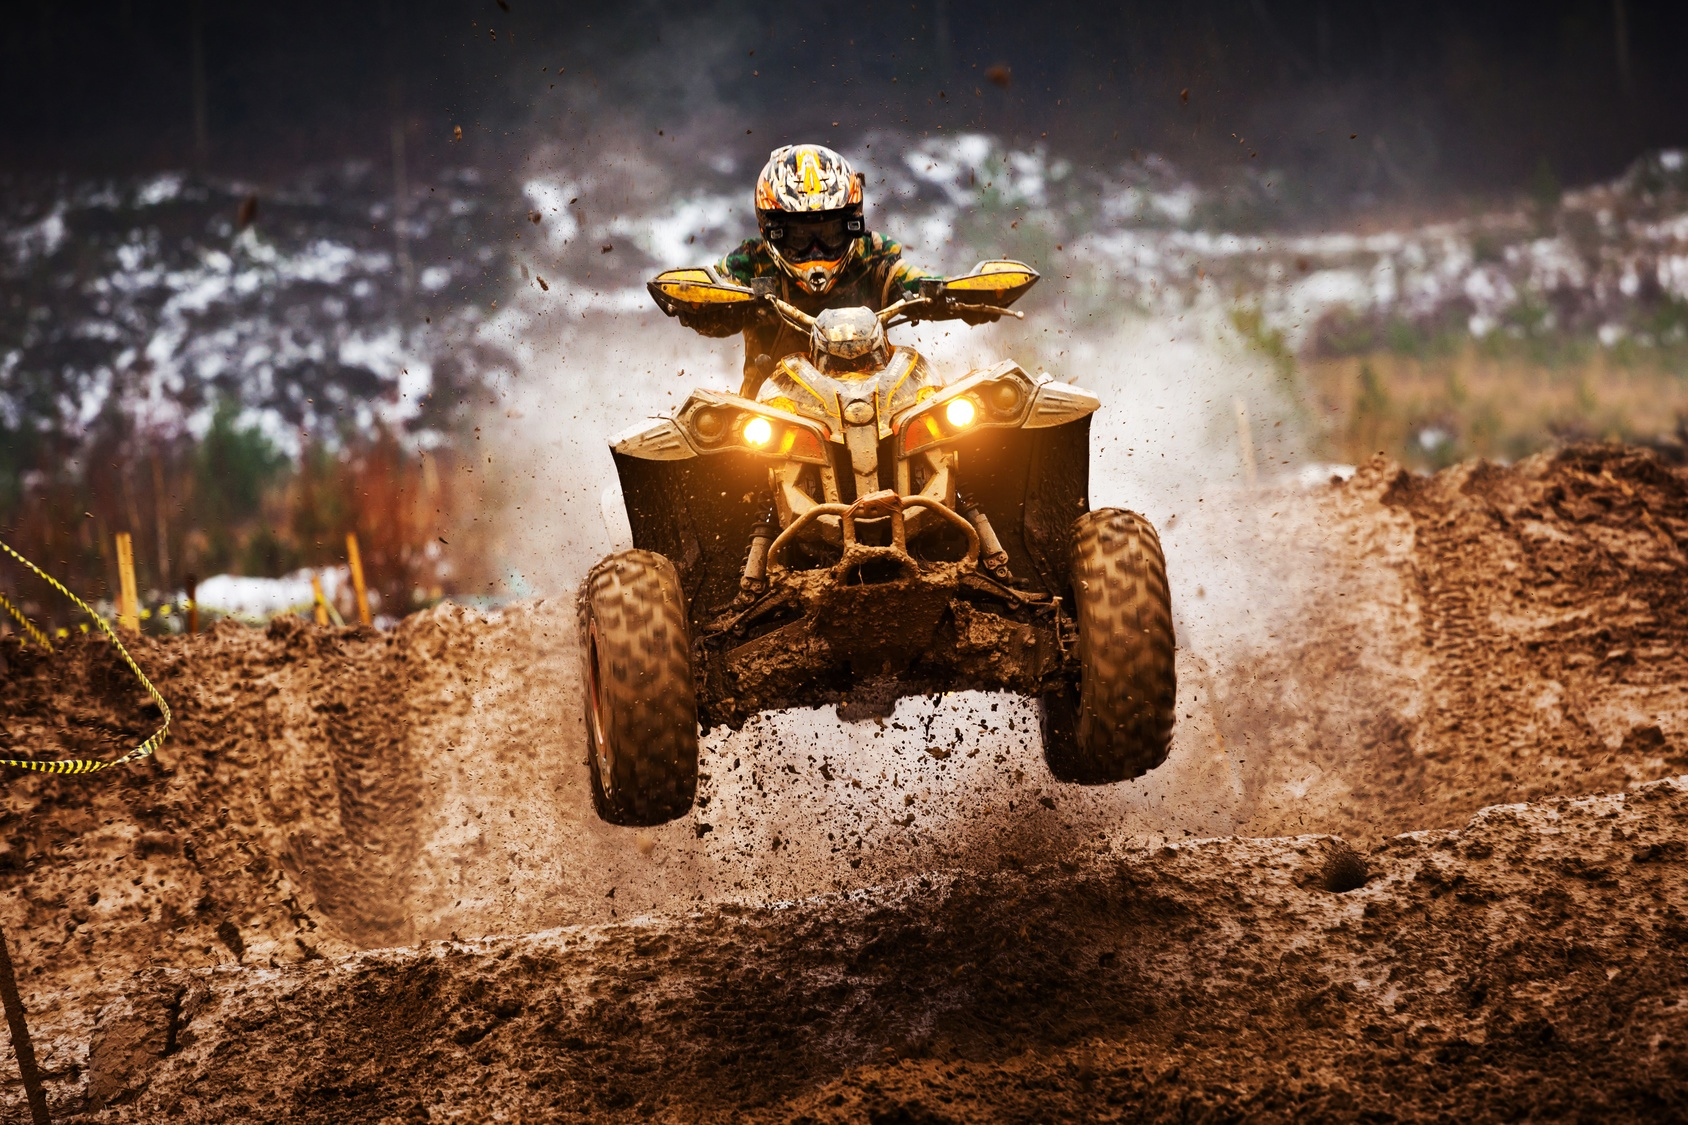 """Stunt or """"goon"""" riding can look impressive, but it isn't worth the risk to life and limb."""